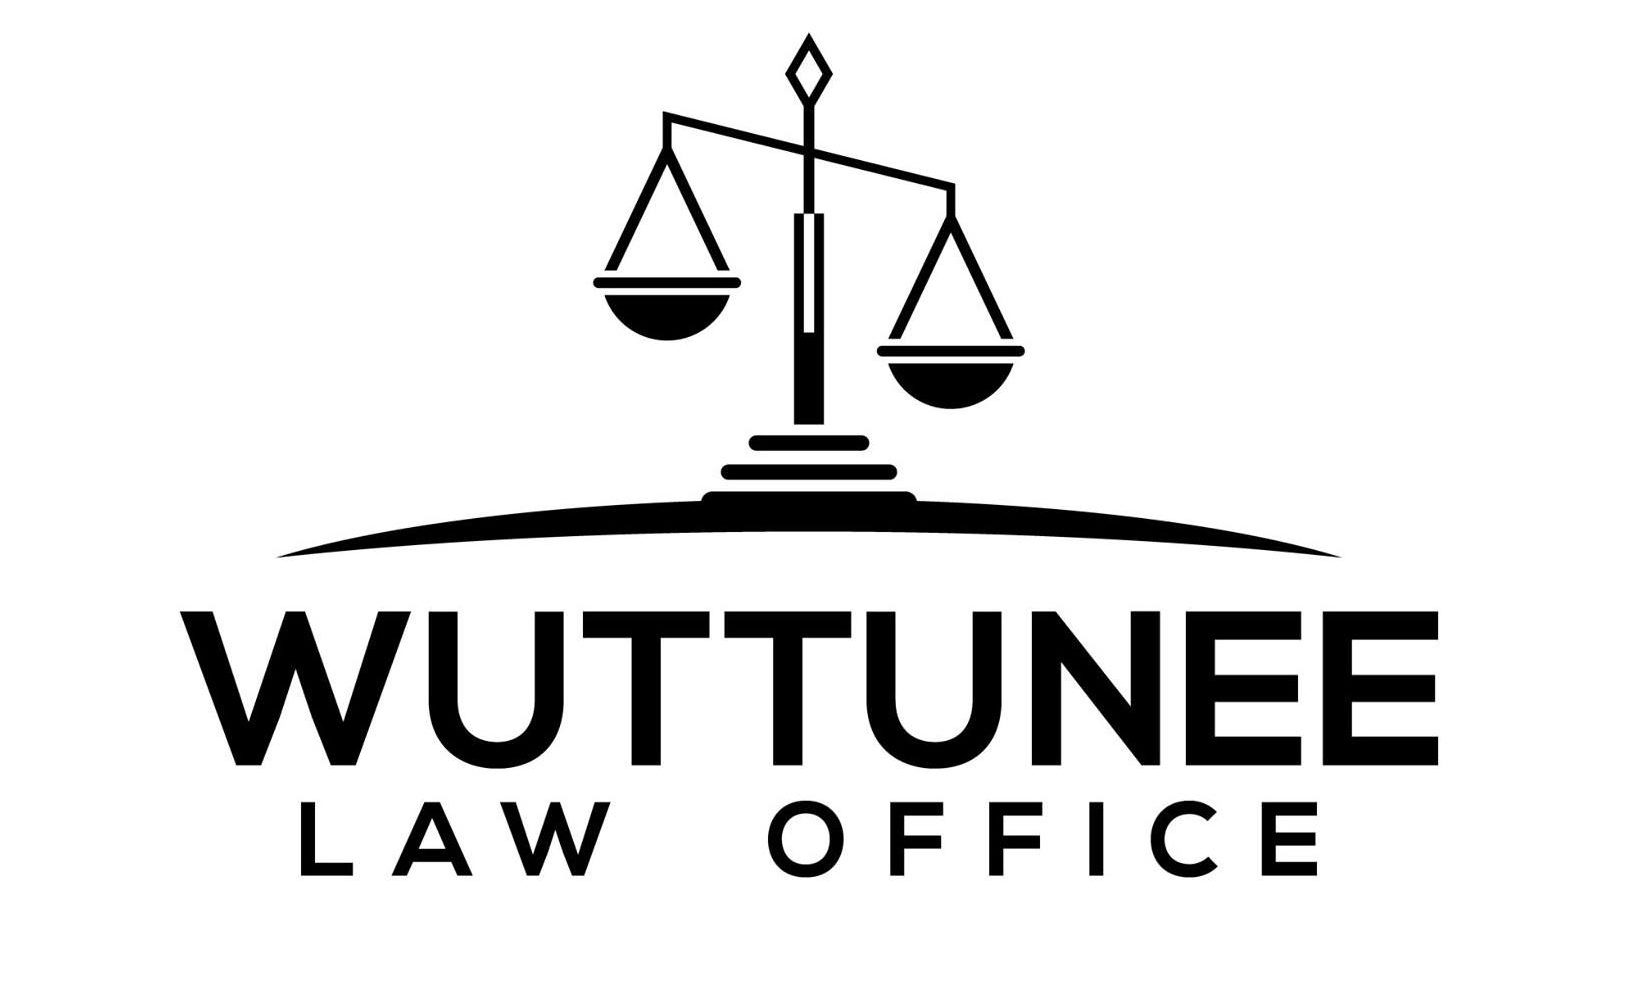 Wuttunee Law Office